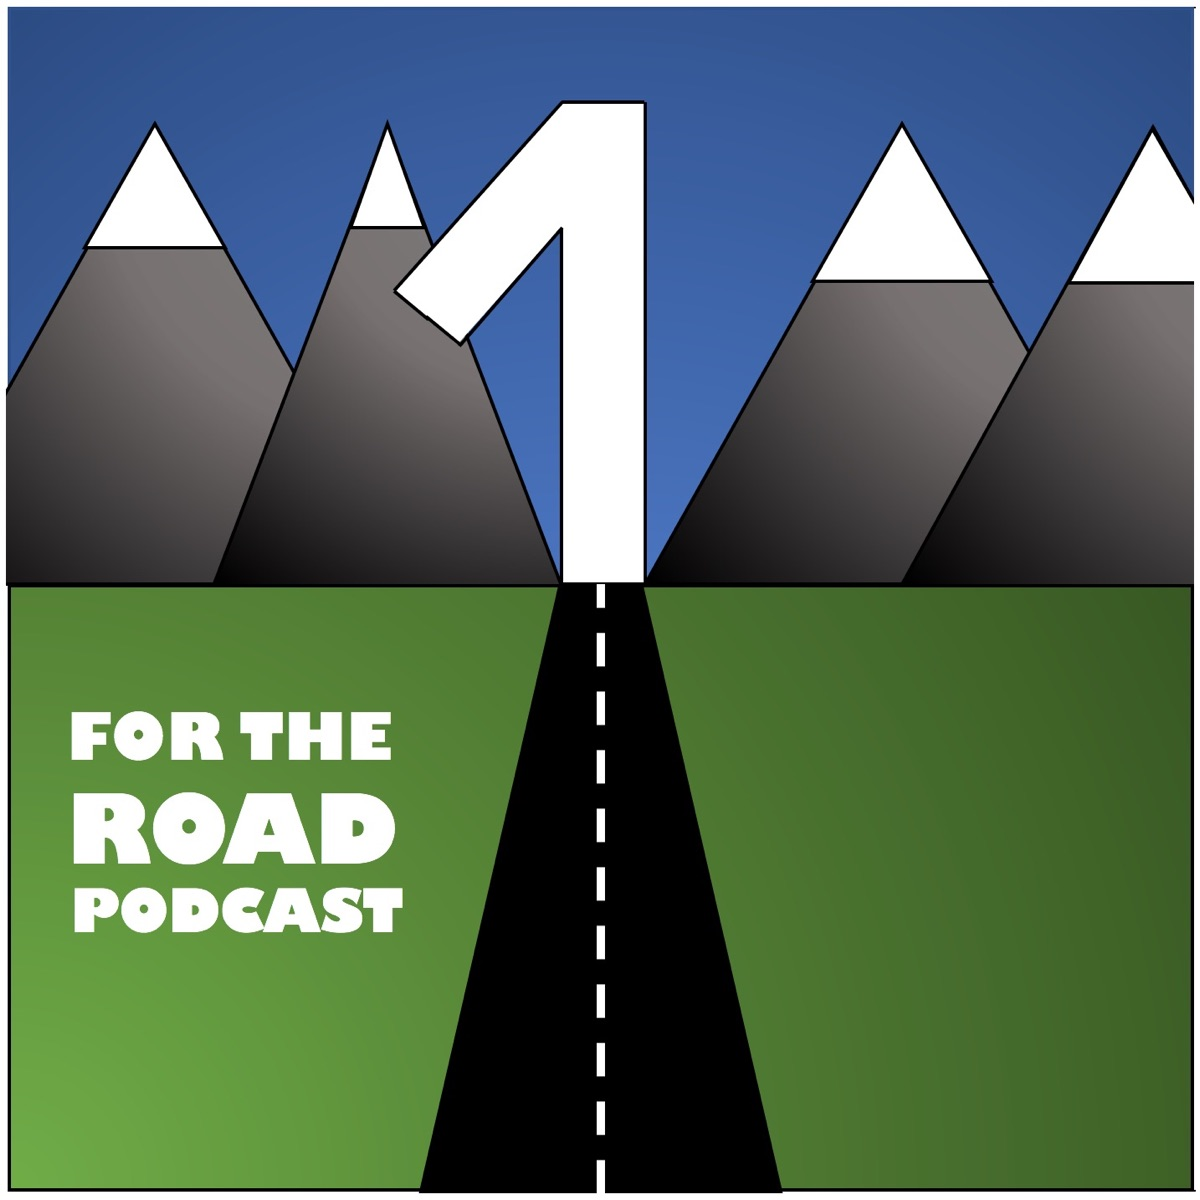 One For The Road Podcast